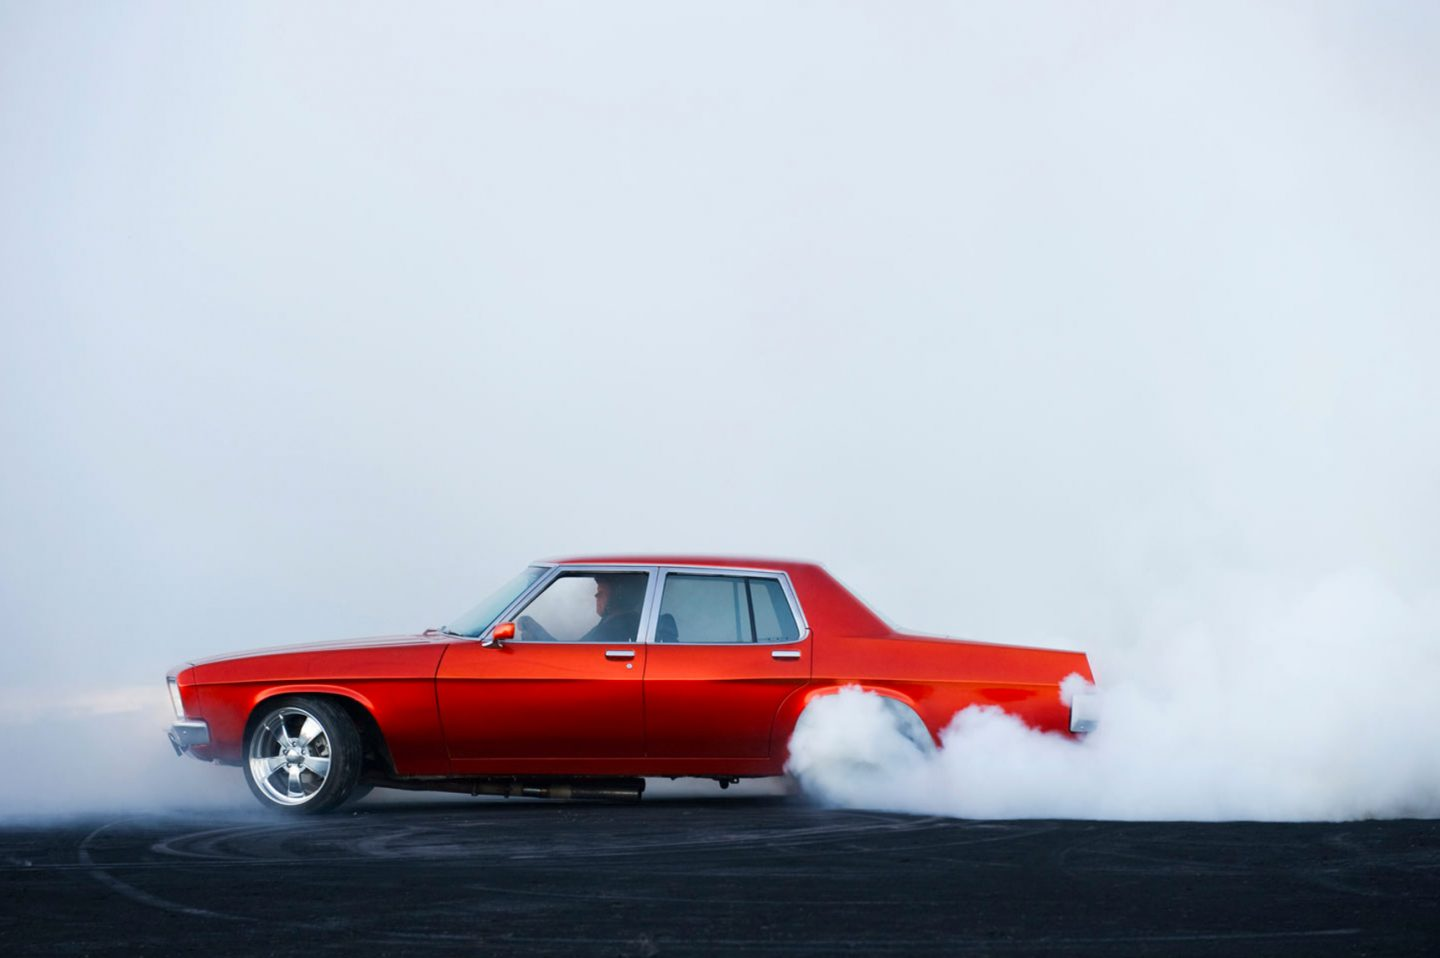 iGNANT_Photography_Burnout_Series_Simon_Davidson_09